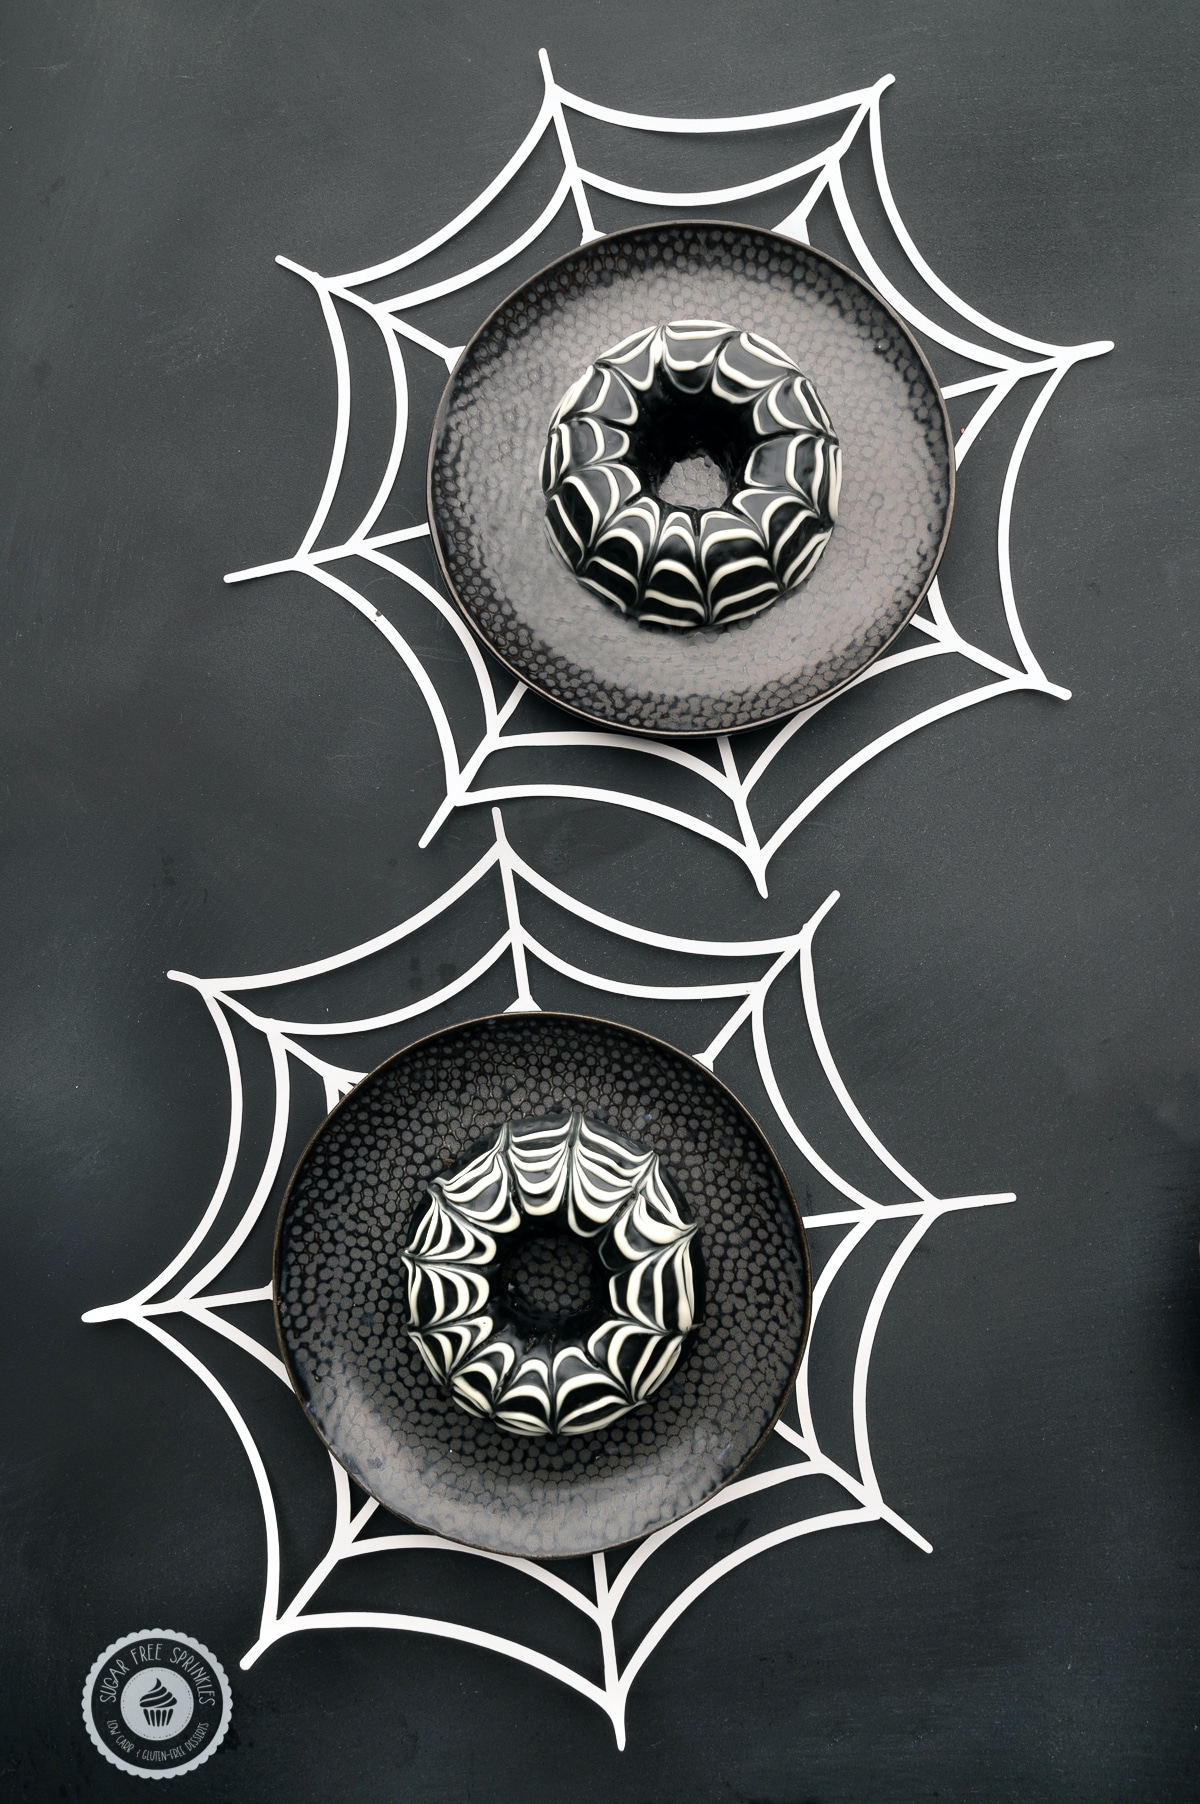 Chocolate glazed keto donuts with a spider web design on dark black plates with white paper spider webs